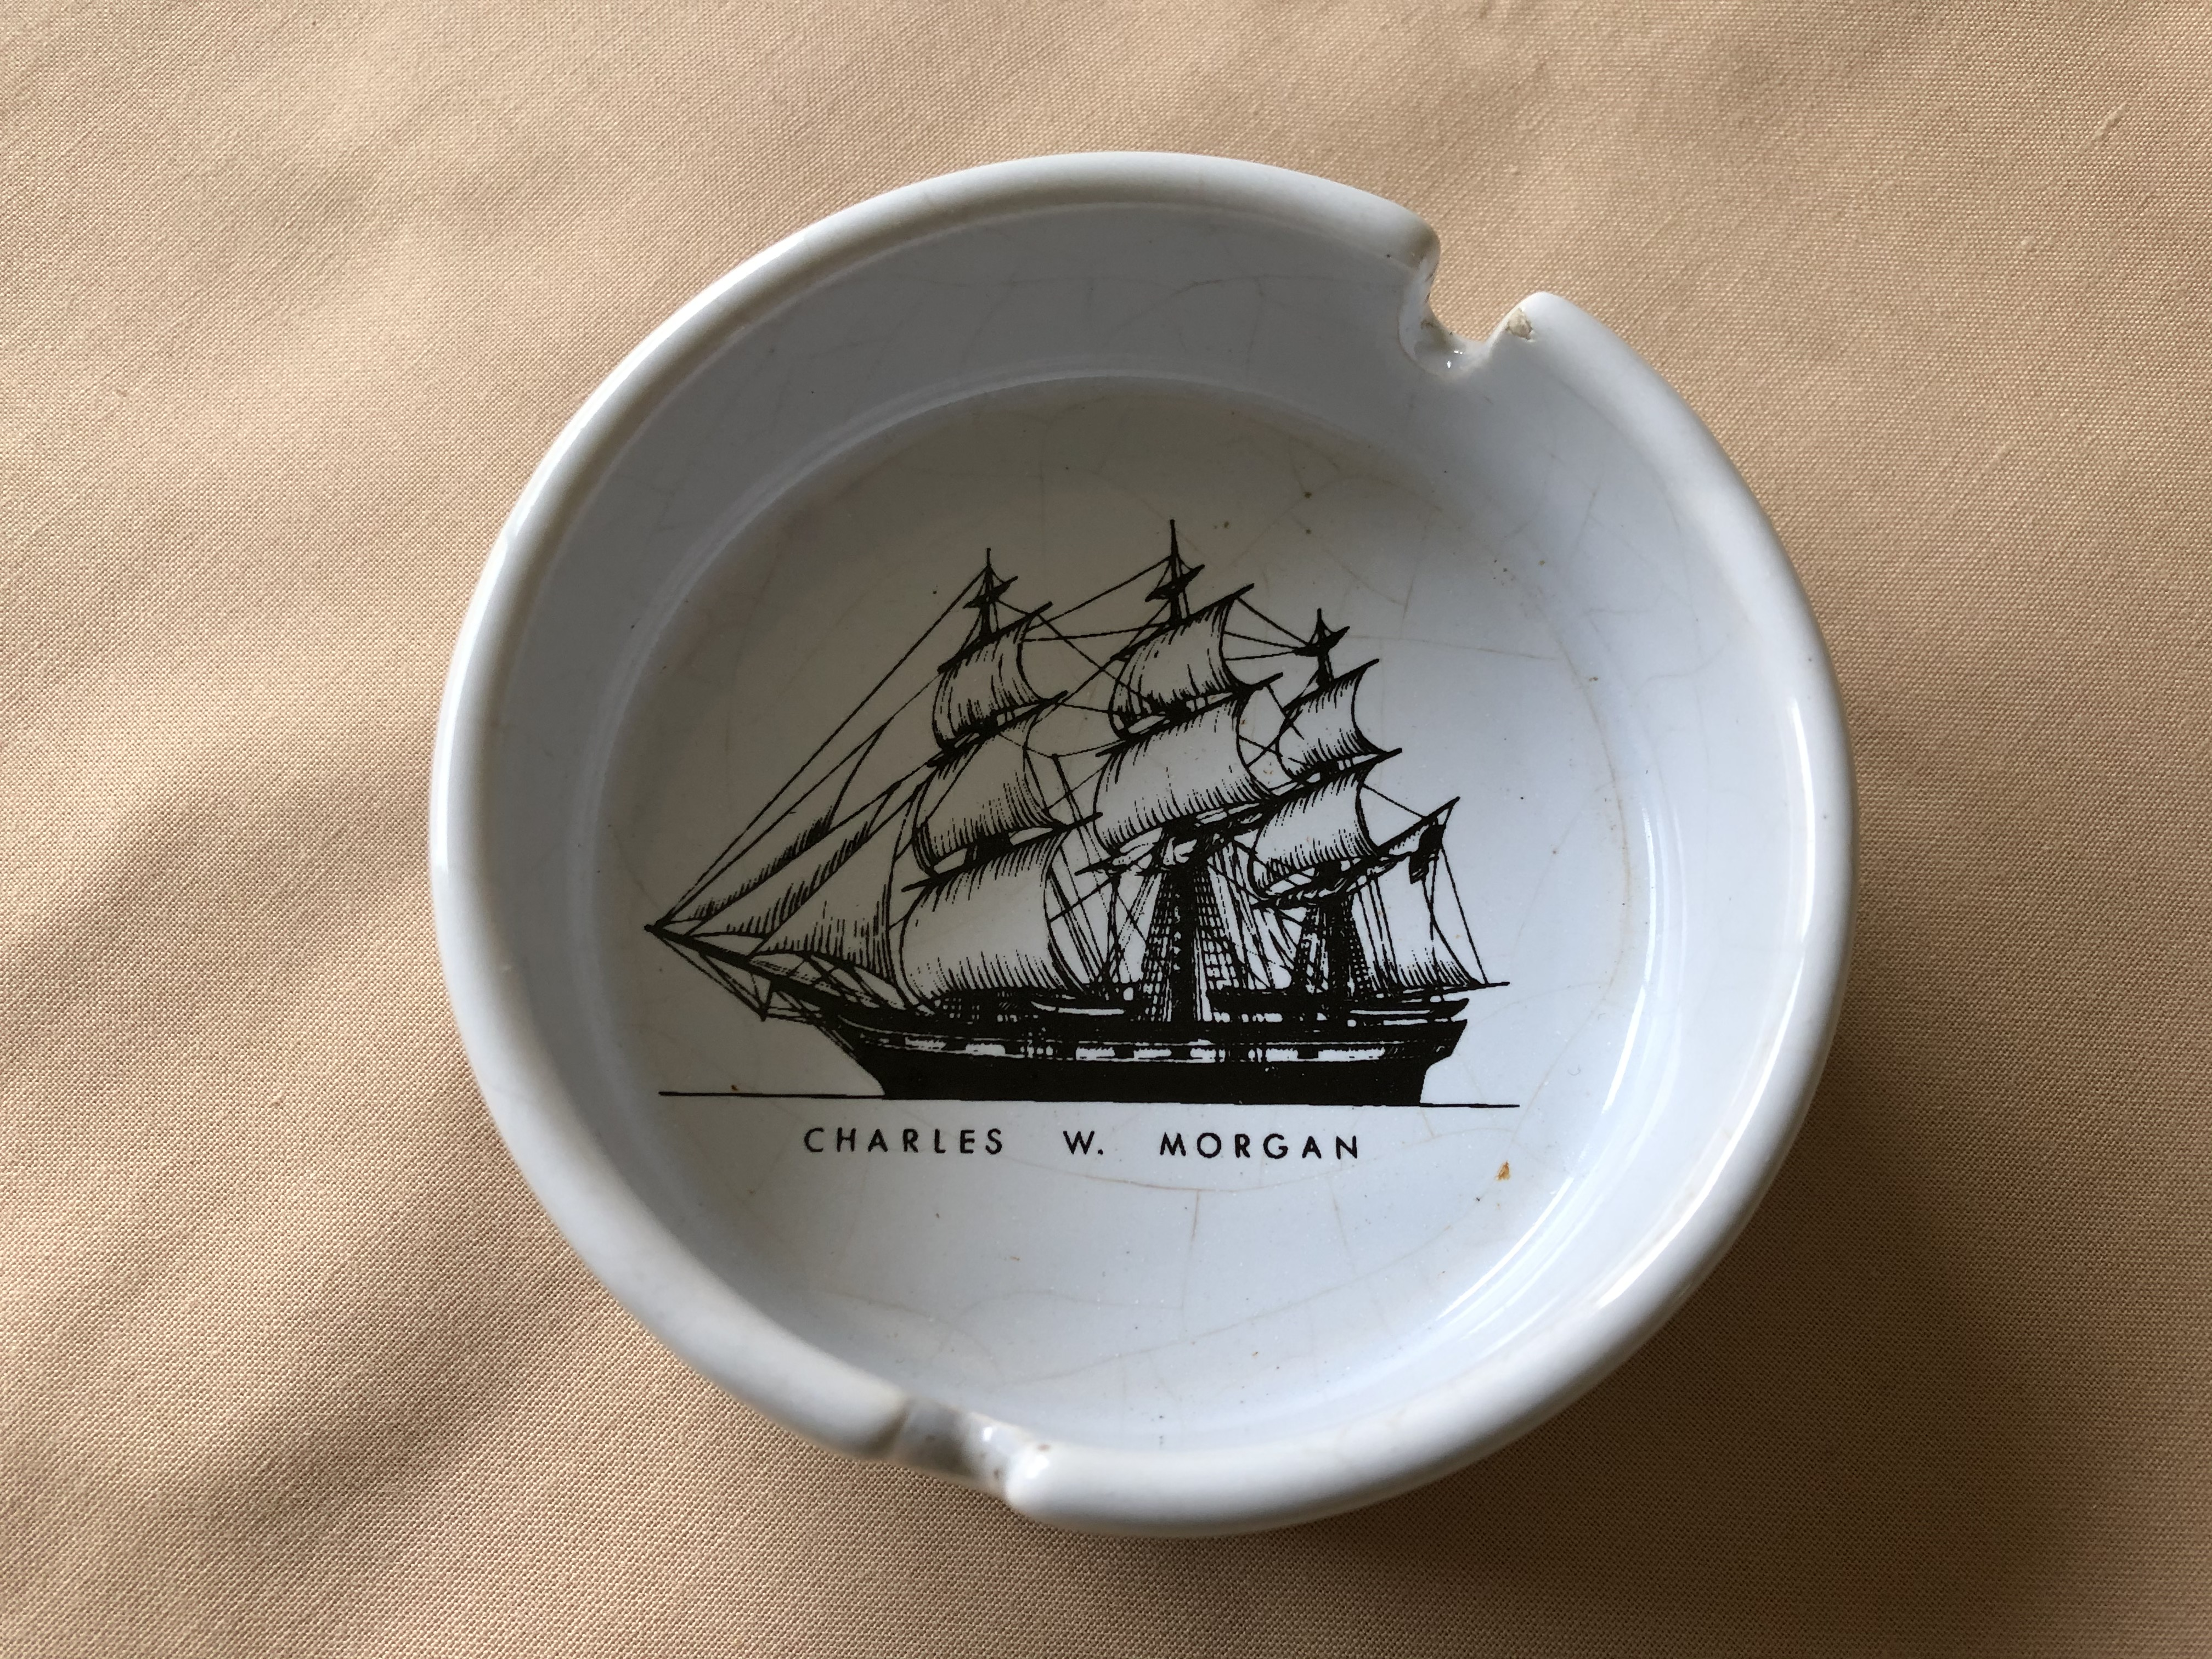 SOUVENIR CHINA ASHTRAY FROM THE VESSEL THE CHARLES W. MORGAN